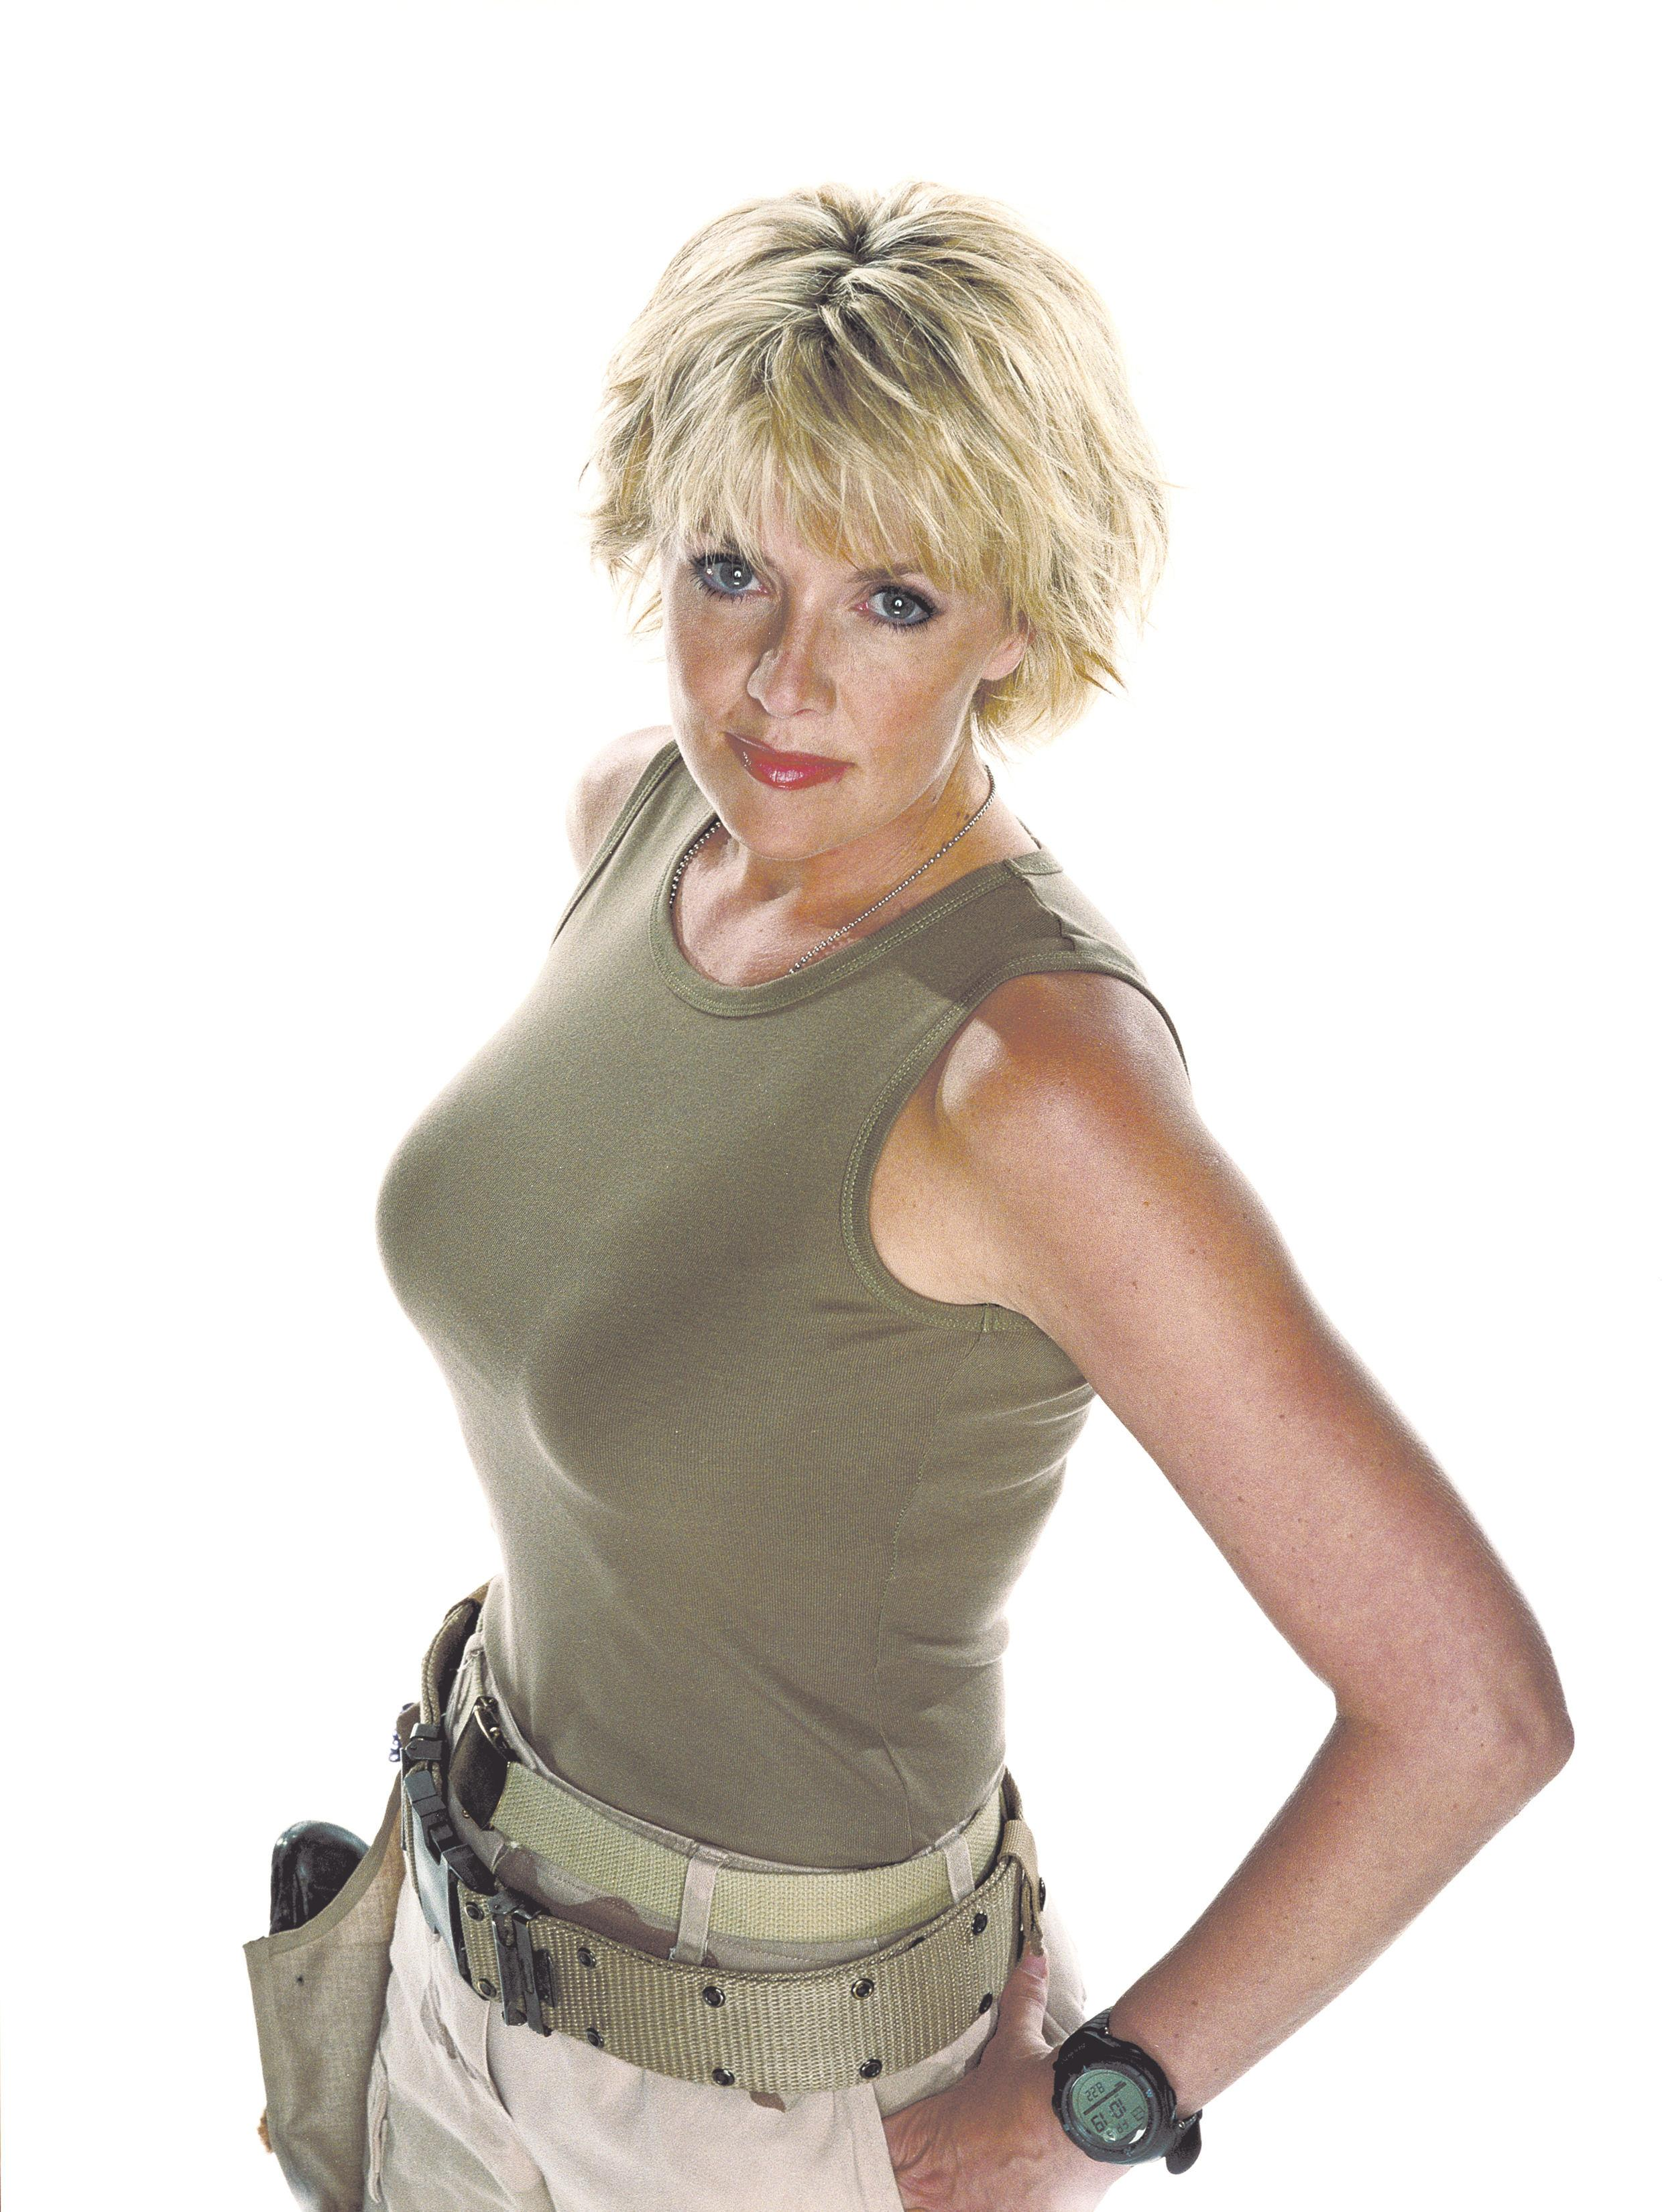 Amanda Tapping Photo Gallery 4 High Quality Pics Theplace